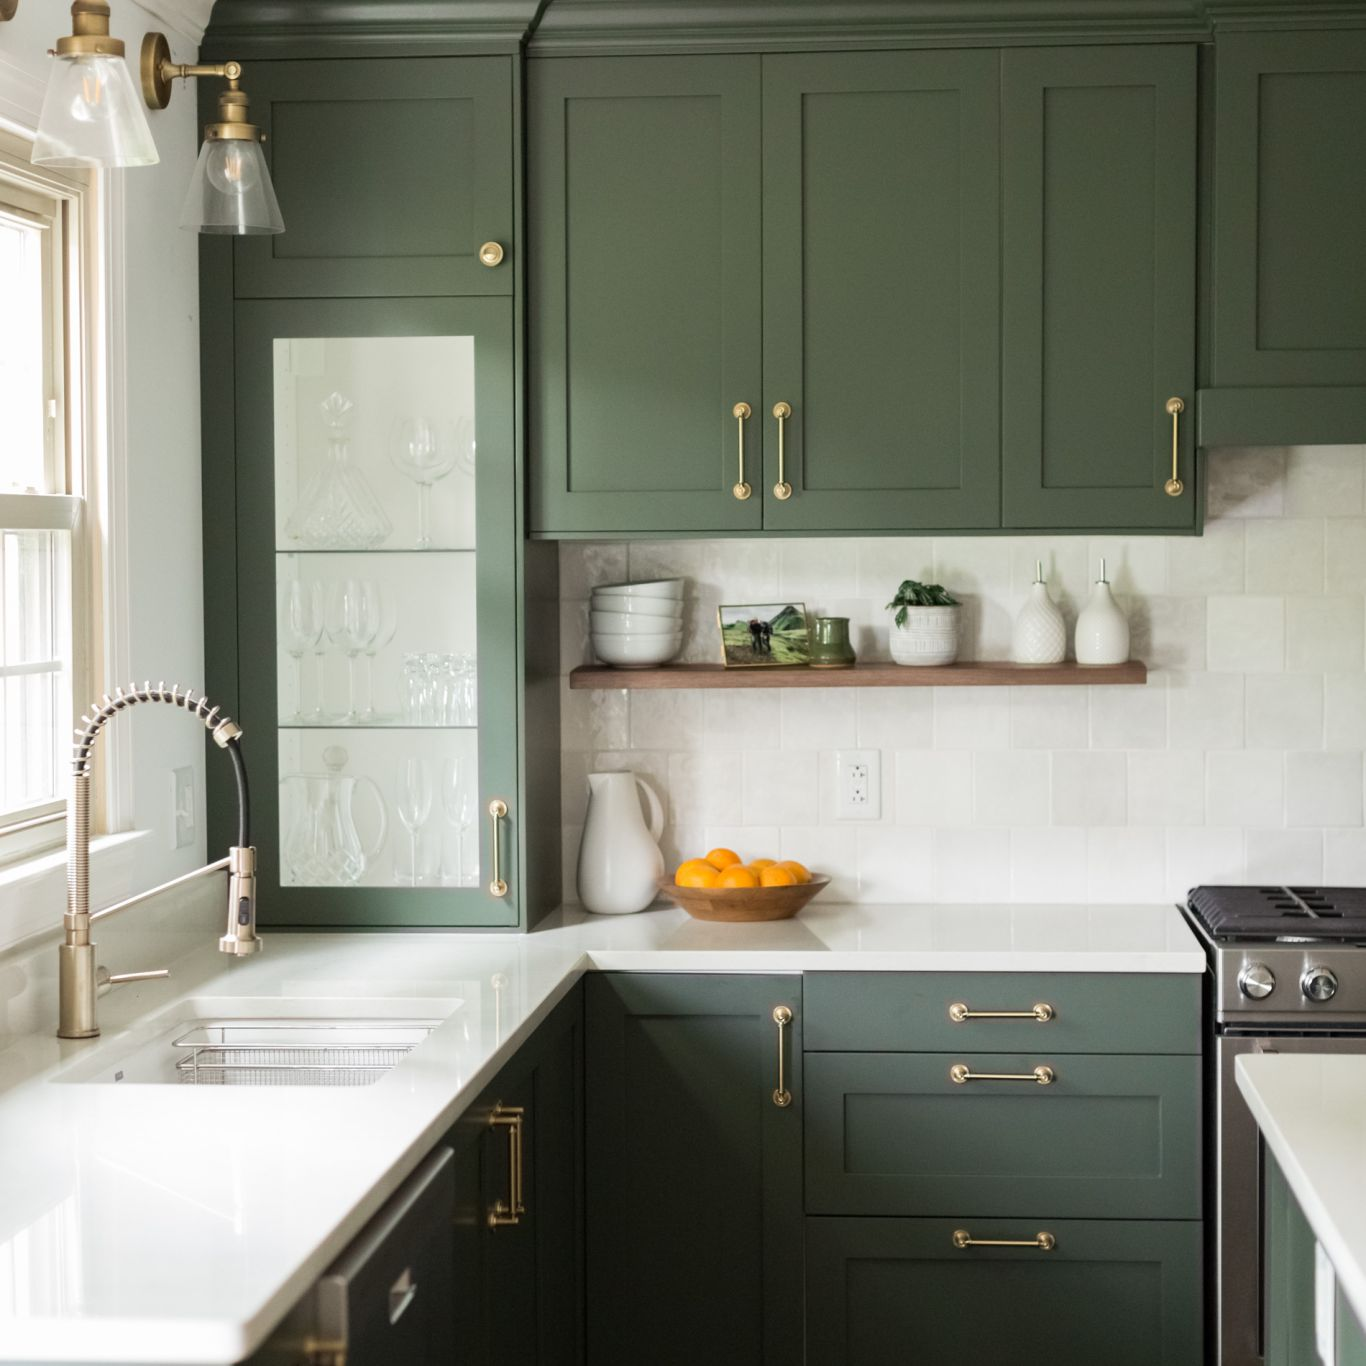 A kitchen lined with forest green IKEA cabinets